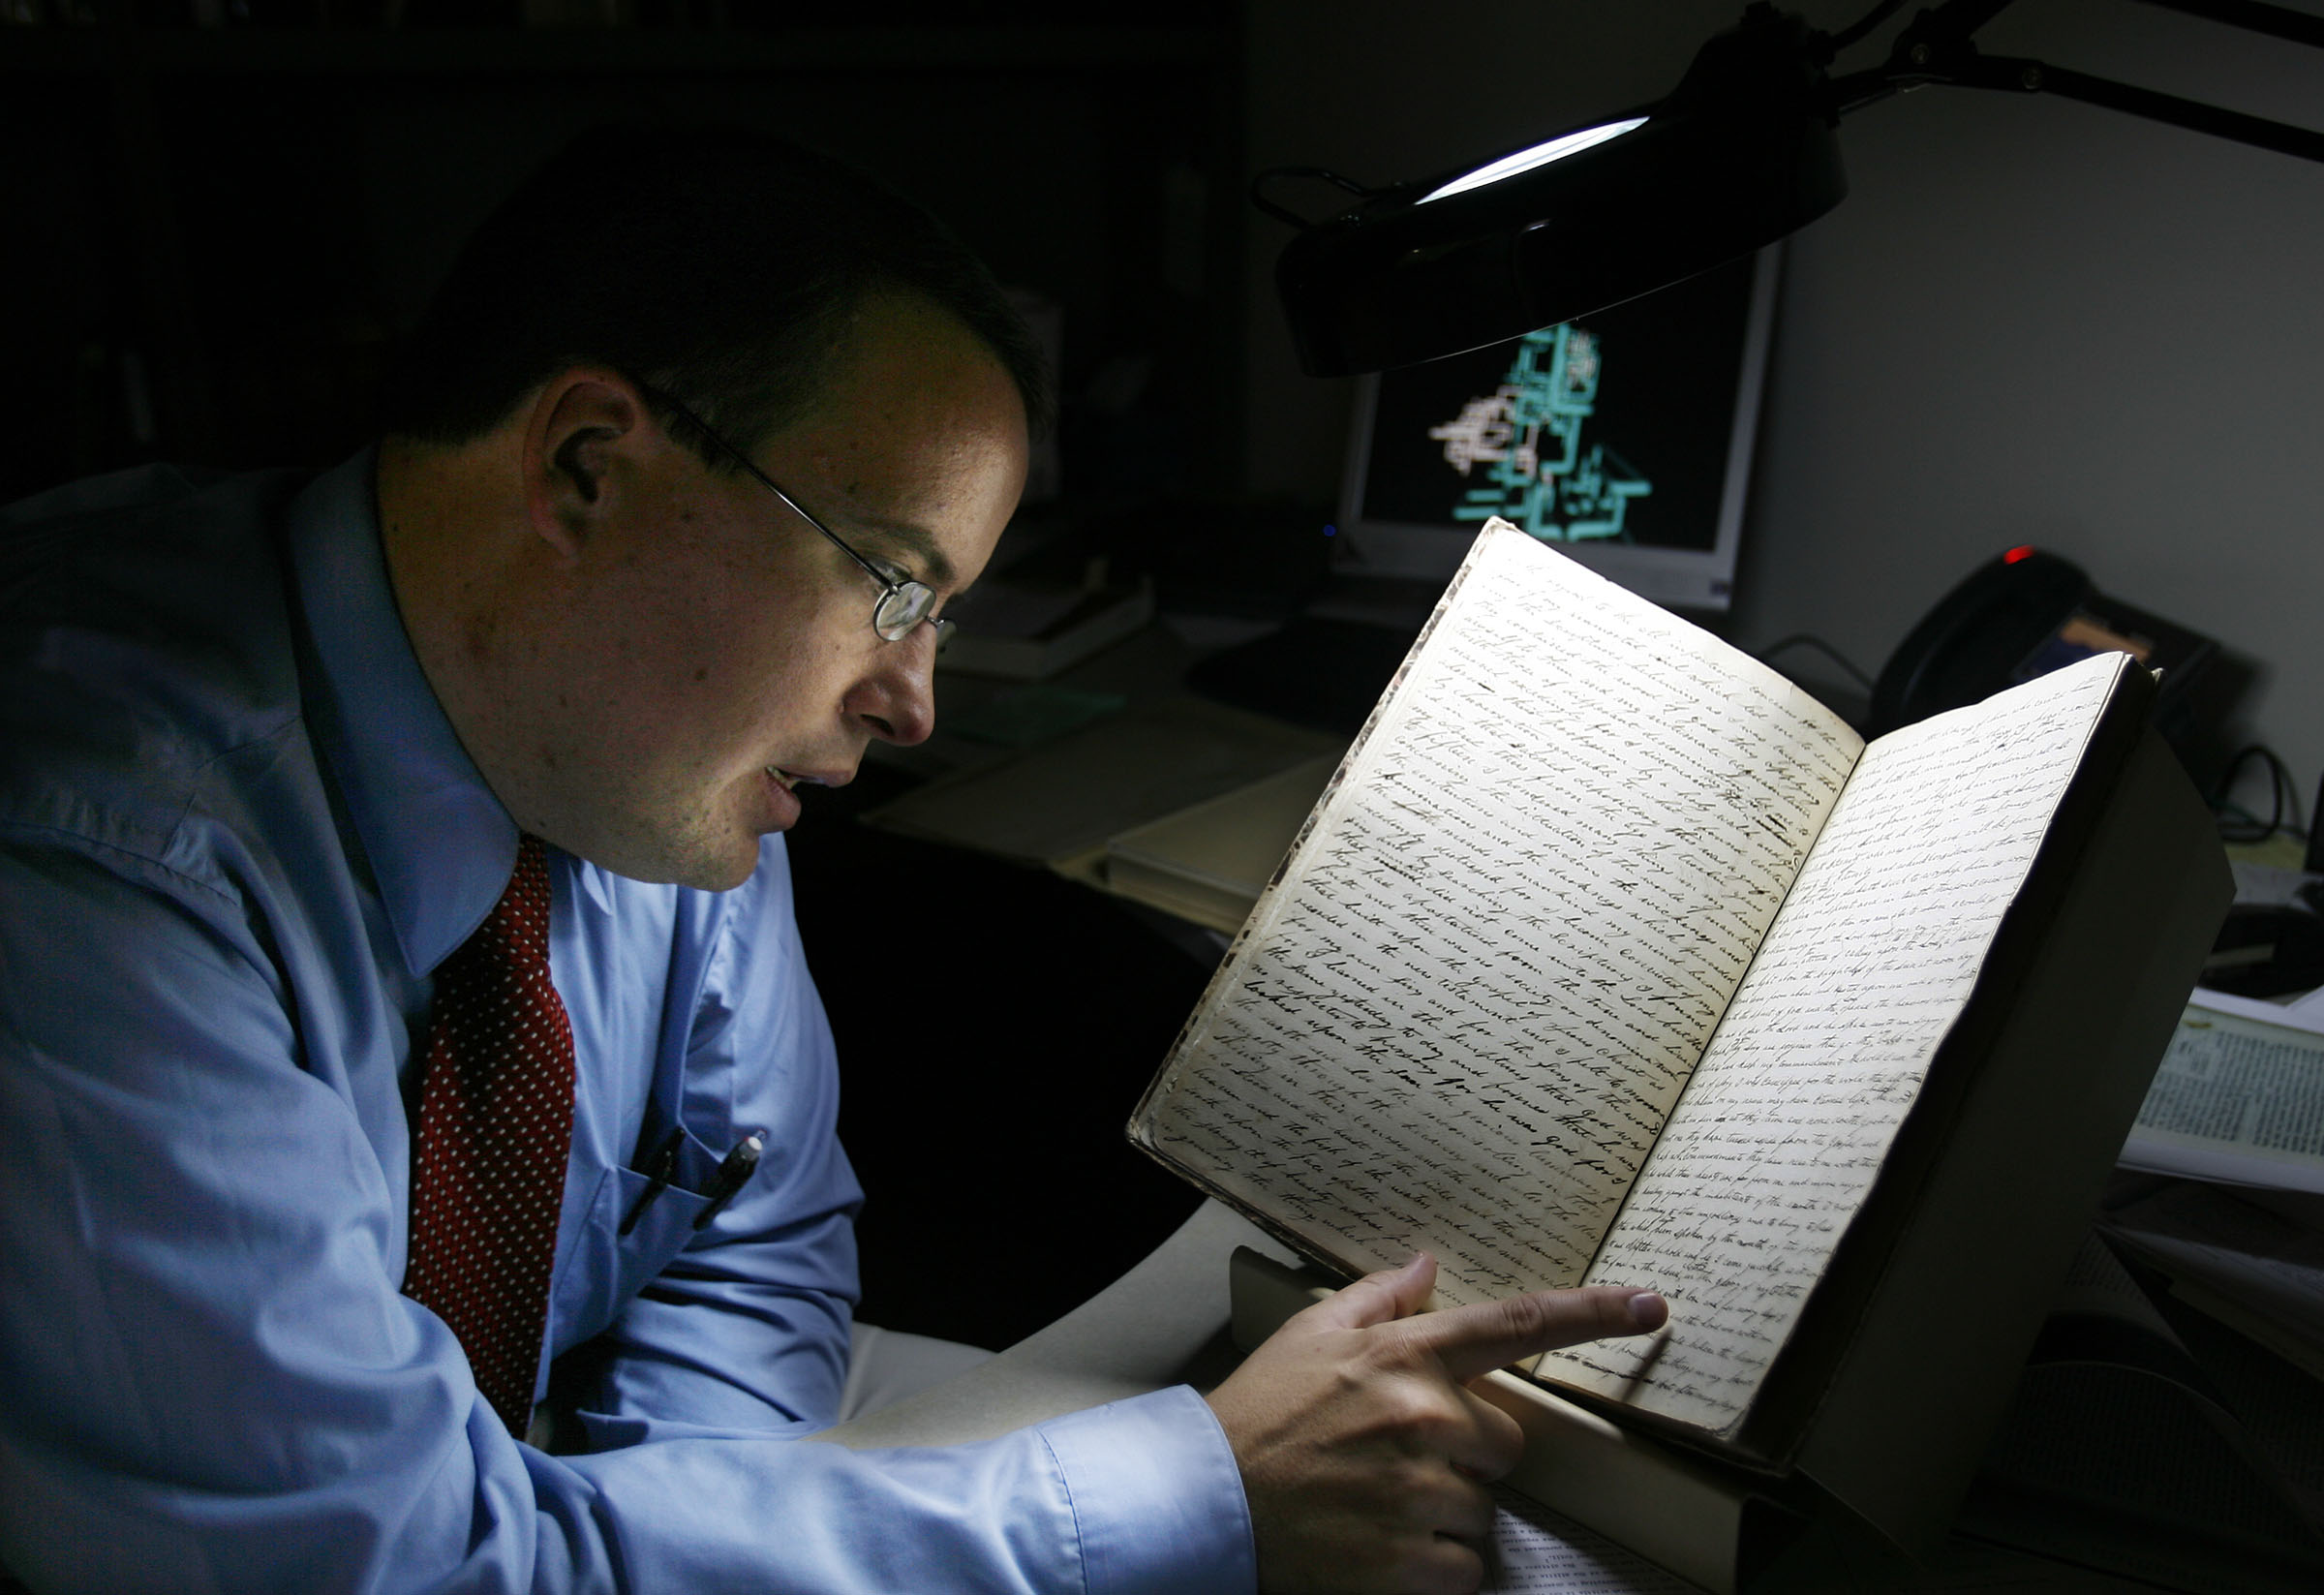 Robin Jensen looks over the Letterbook #1, which was written or dictated by Joseph Smith, at the Church History Library in Salt Lake City, Utah, Friday, Sept. 11, 2009. Jensen is working on the Joseph Smith Papers project